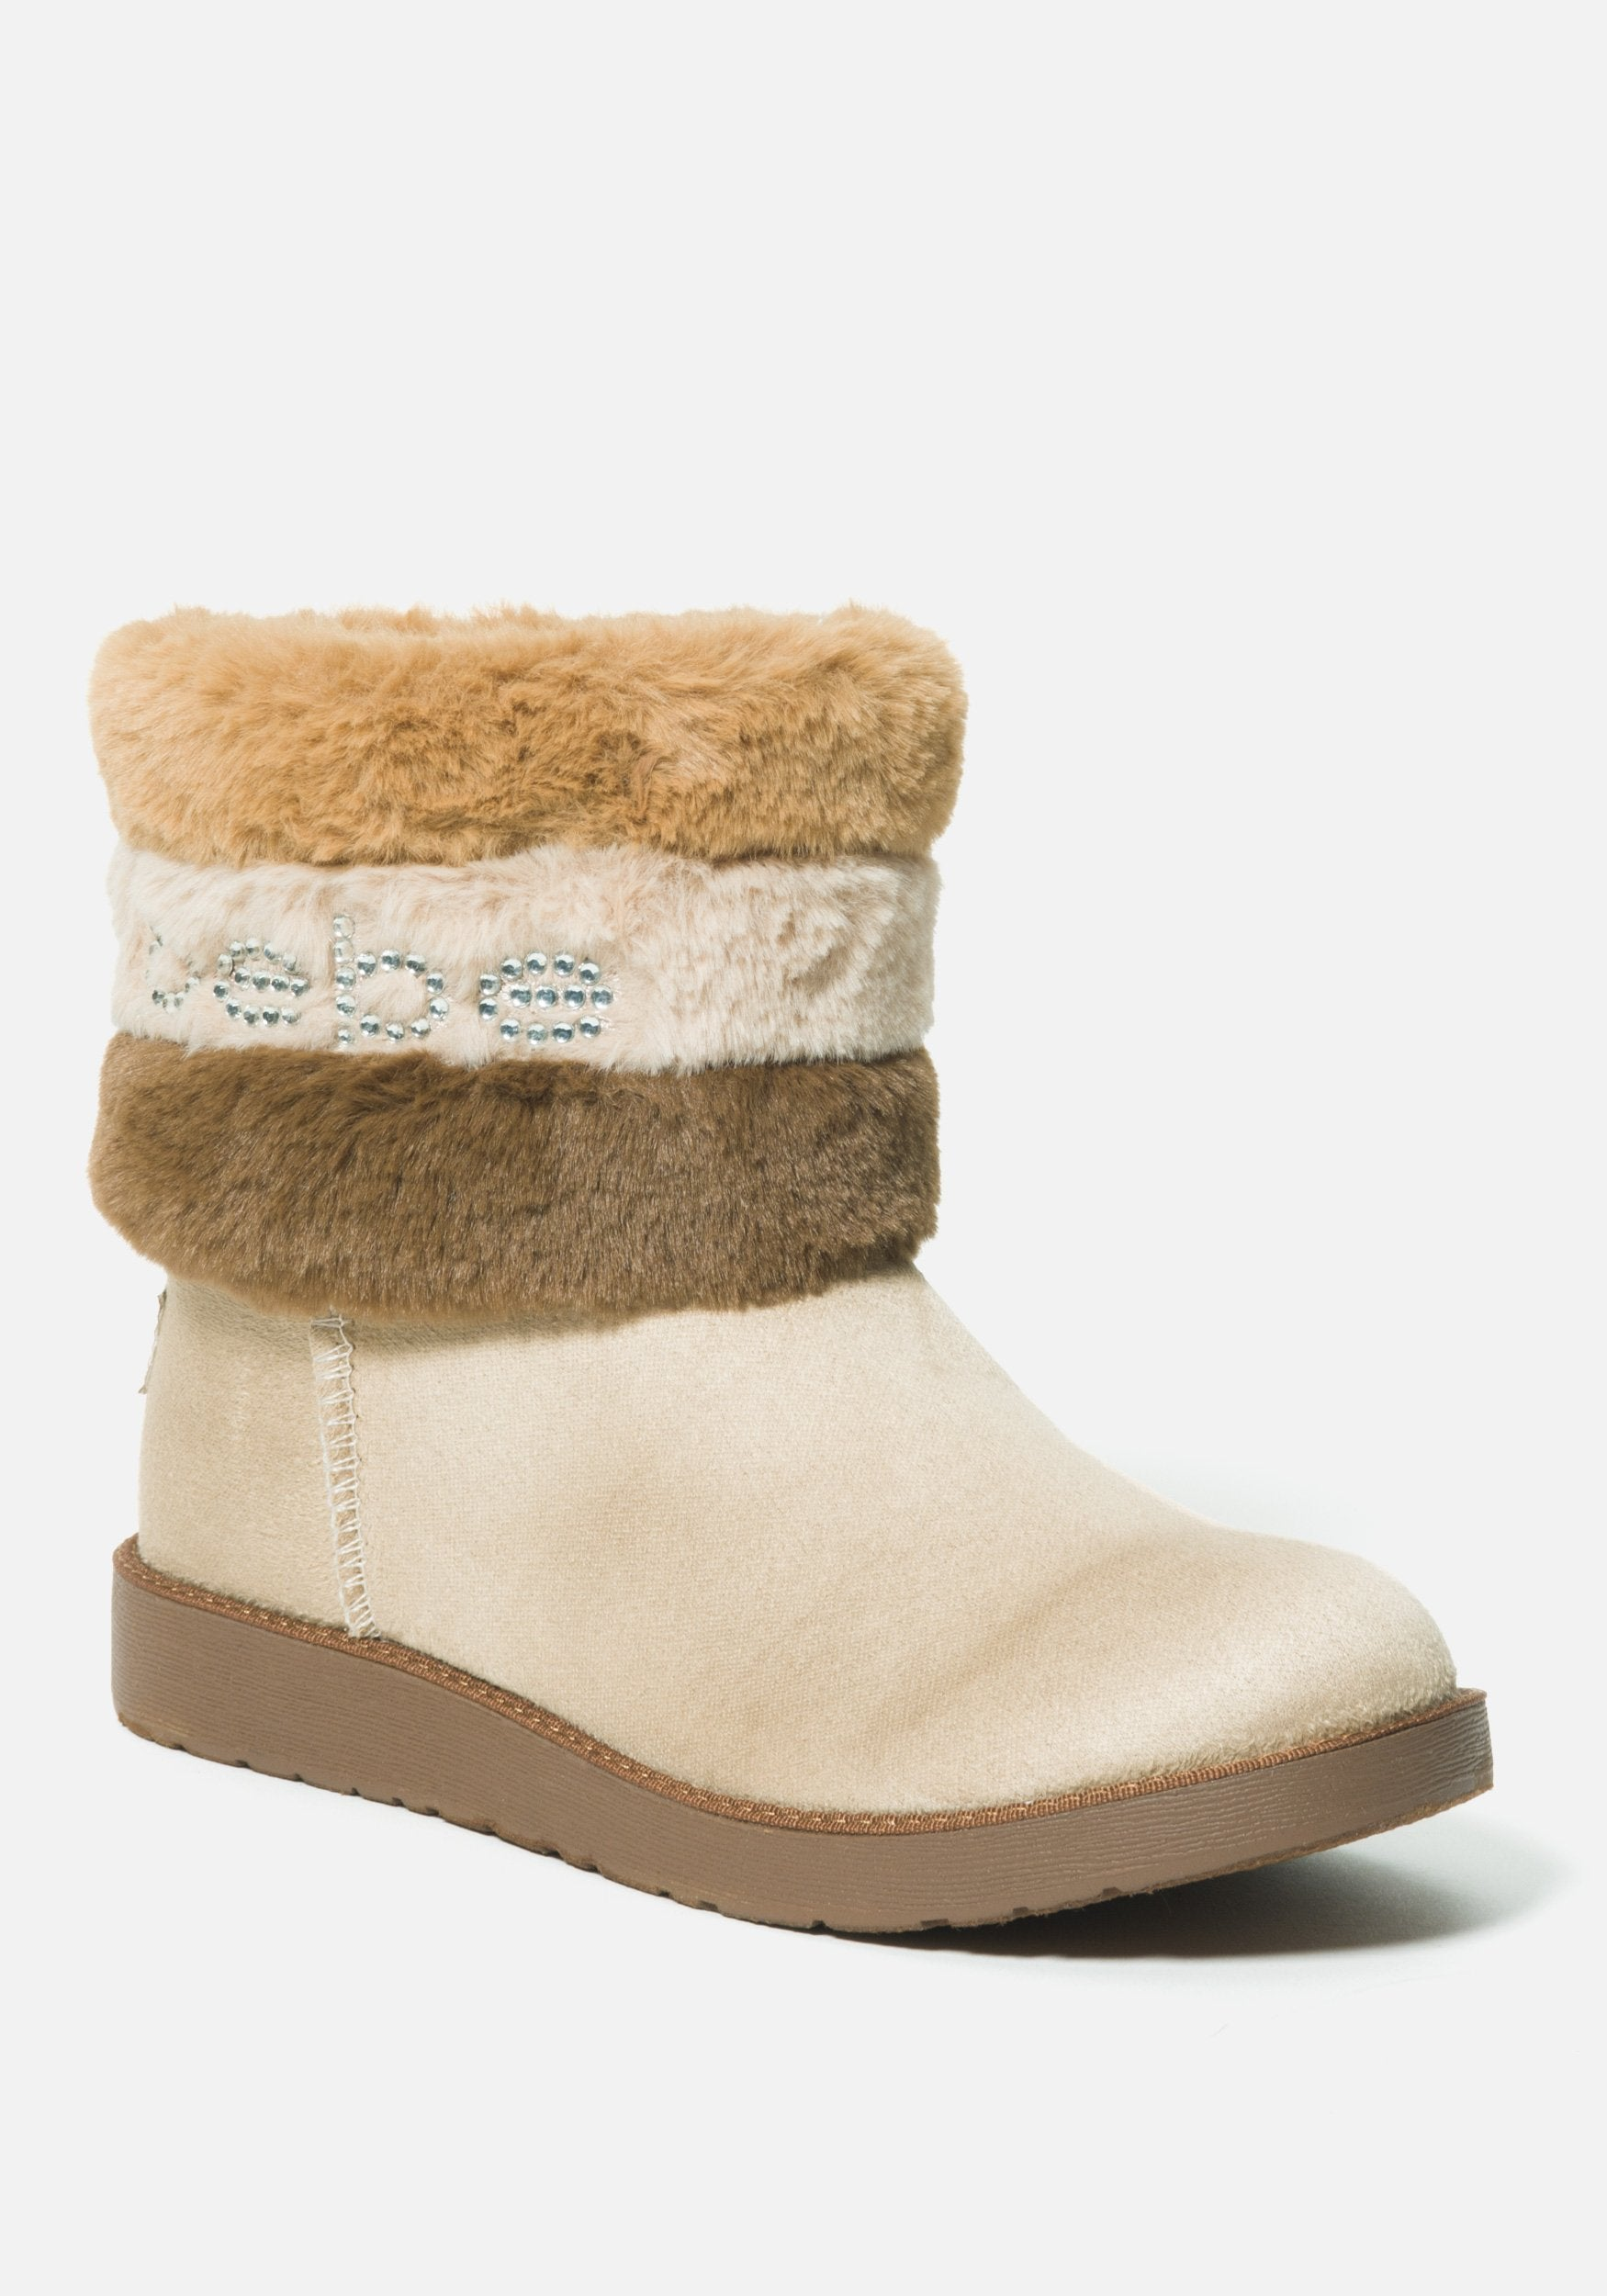 Bebe Women's Laverne Faux Suede Winter Boot, Size 6 in SAND